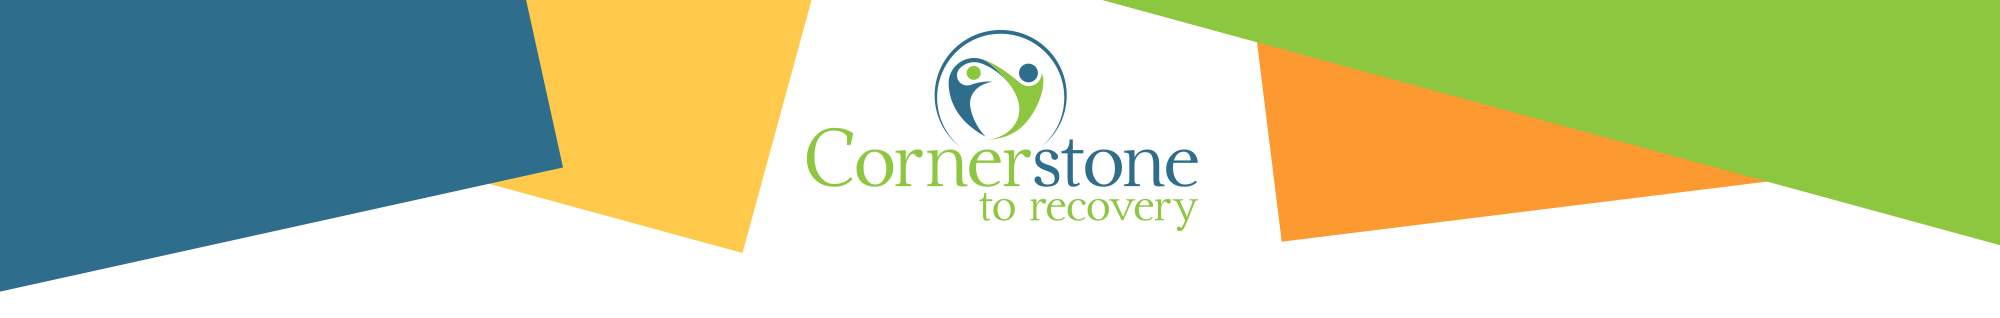 Cornerstone To Recovery